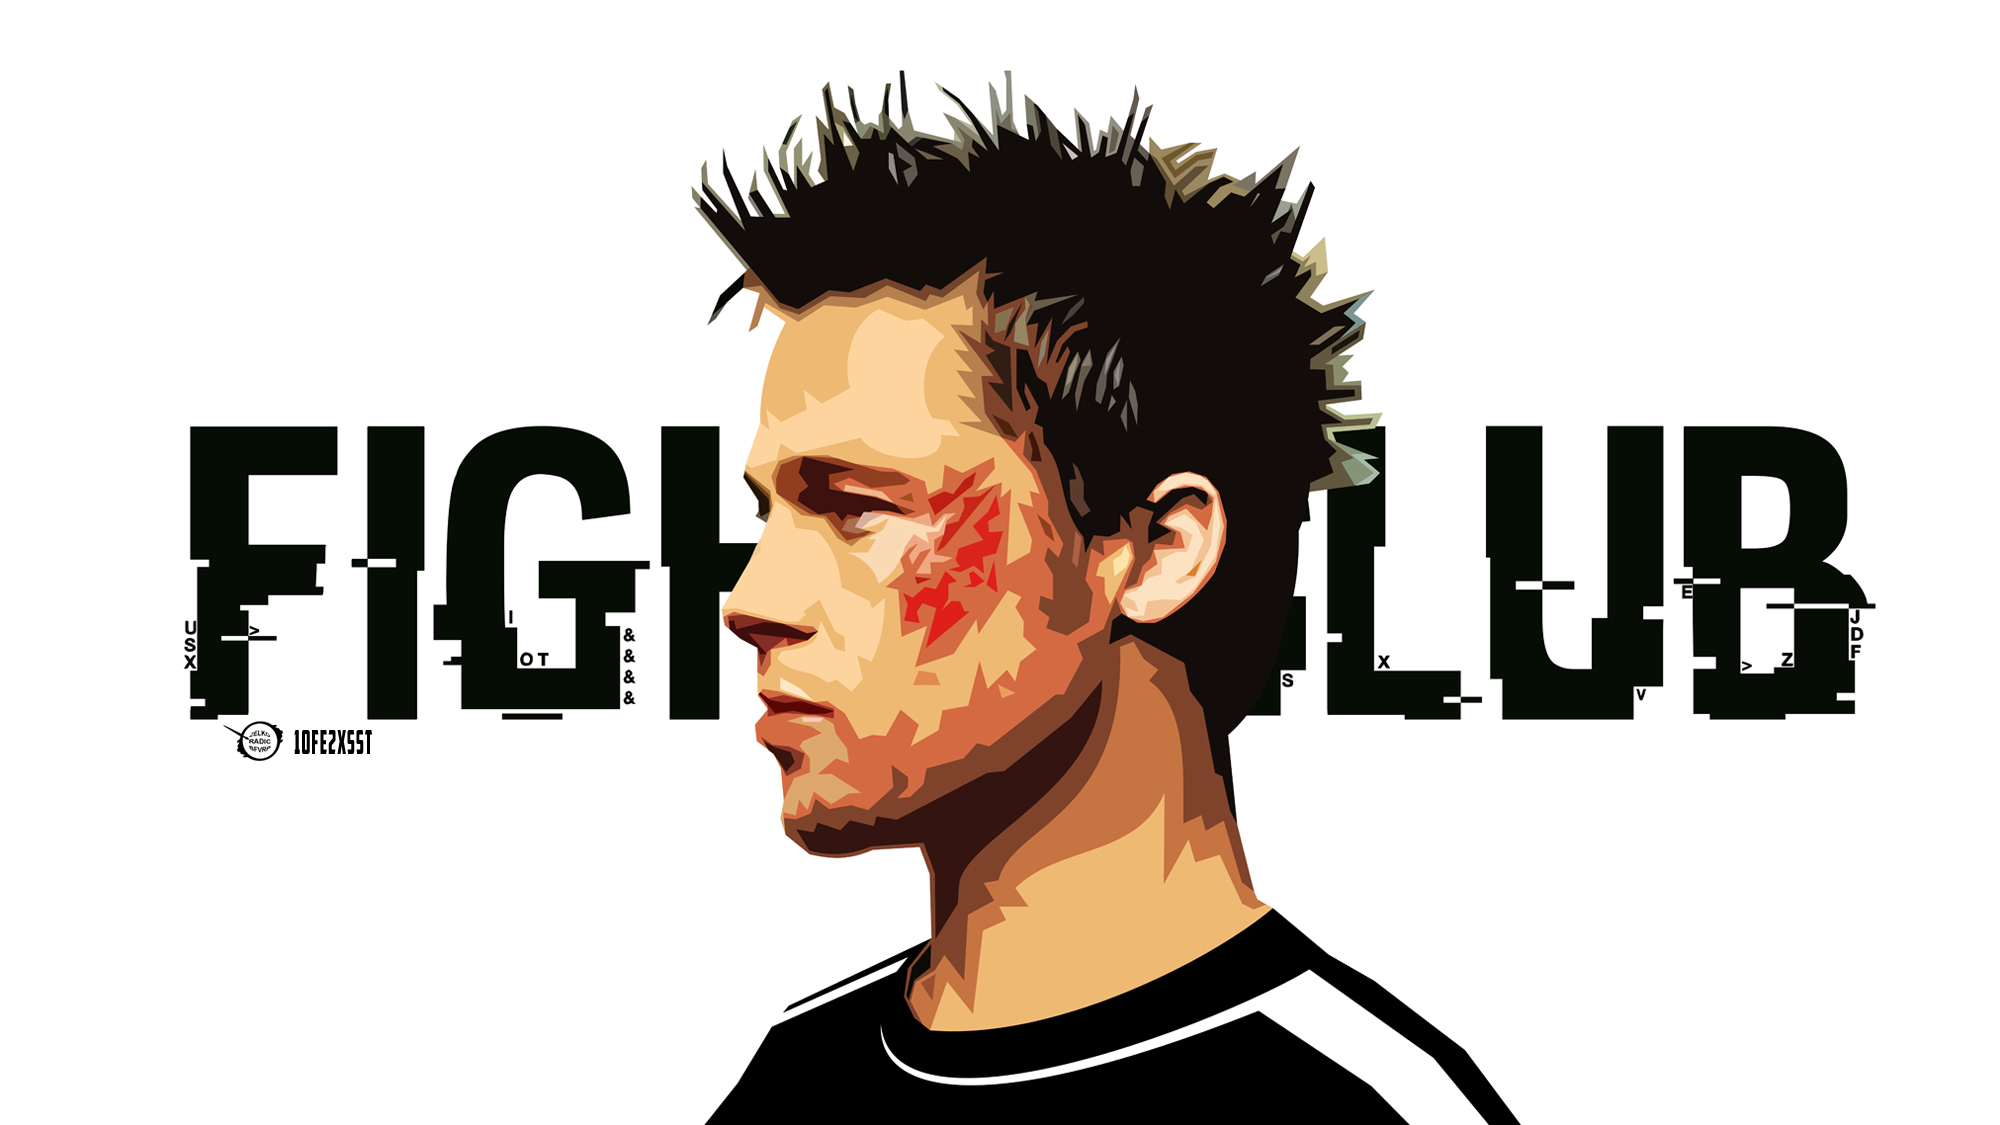 Brad Pitt Hd Wallpapers: Fight Club Wallpapers, Pictures, Images